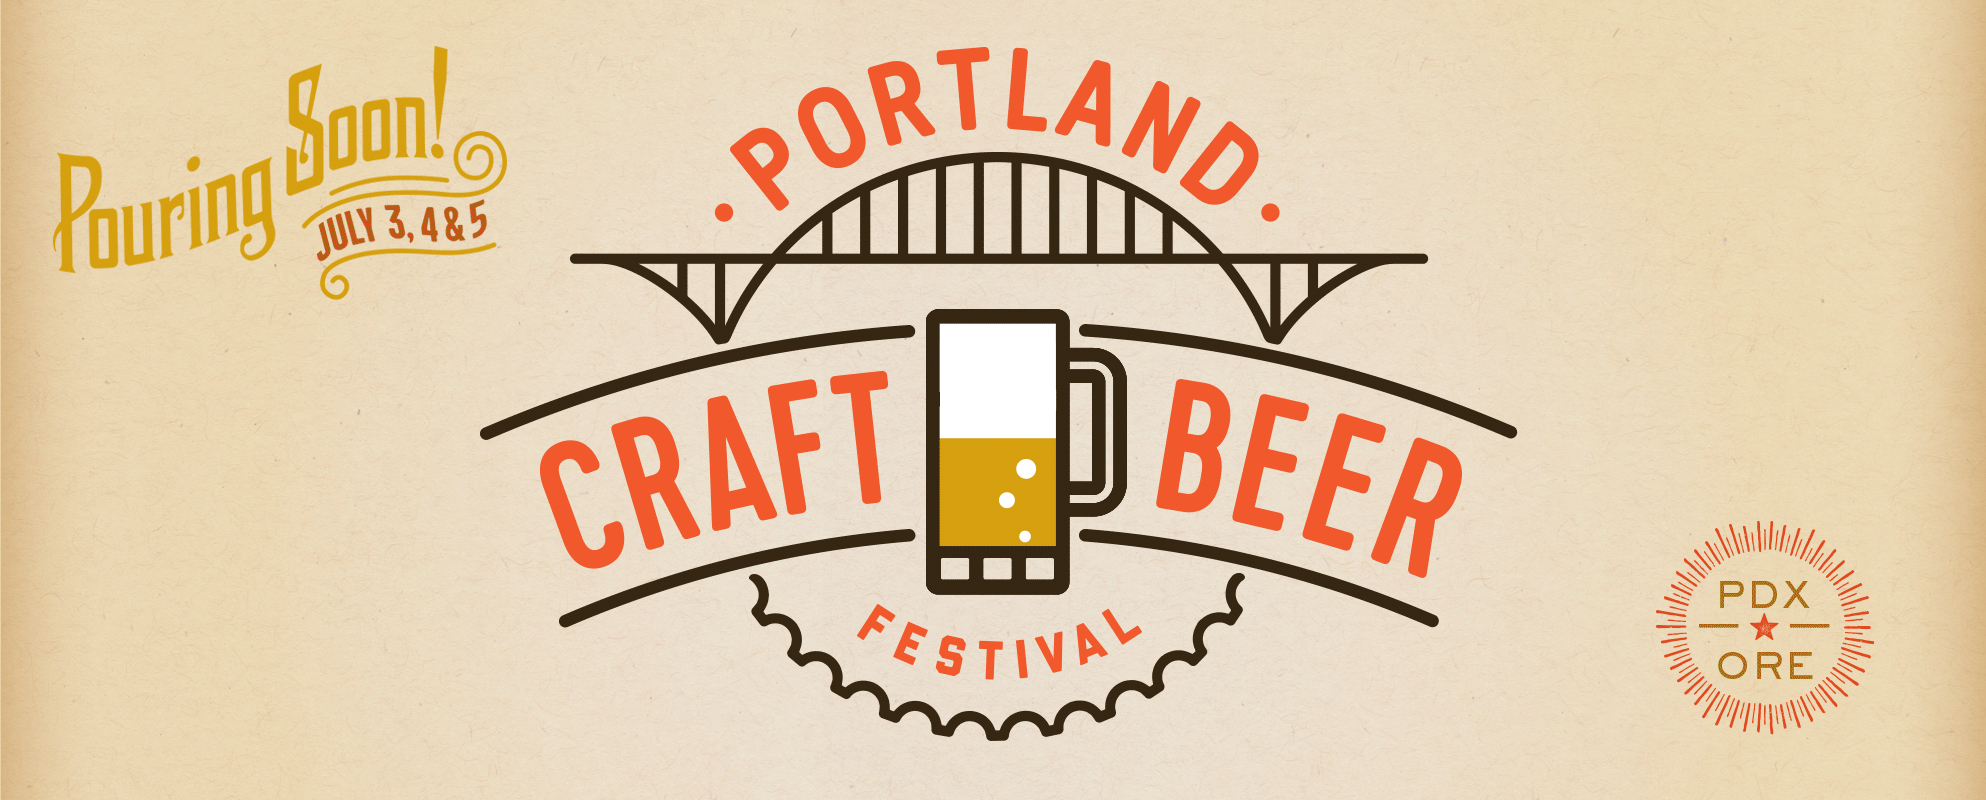 Portland Craft Beer Festival 2015